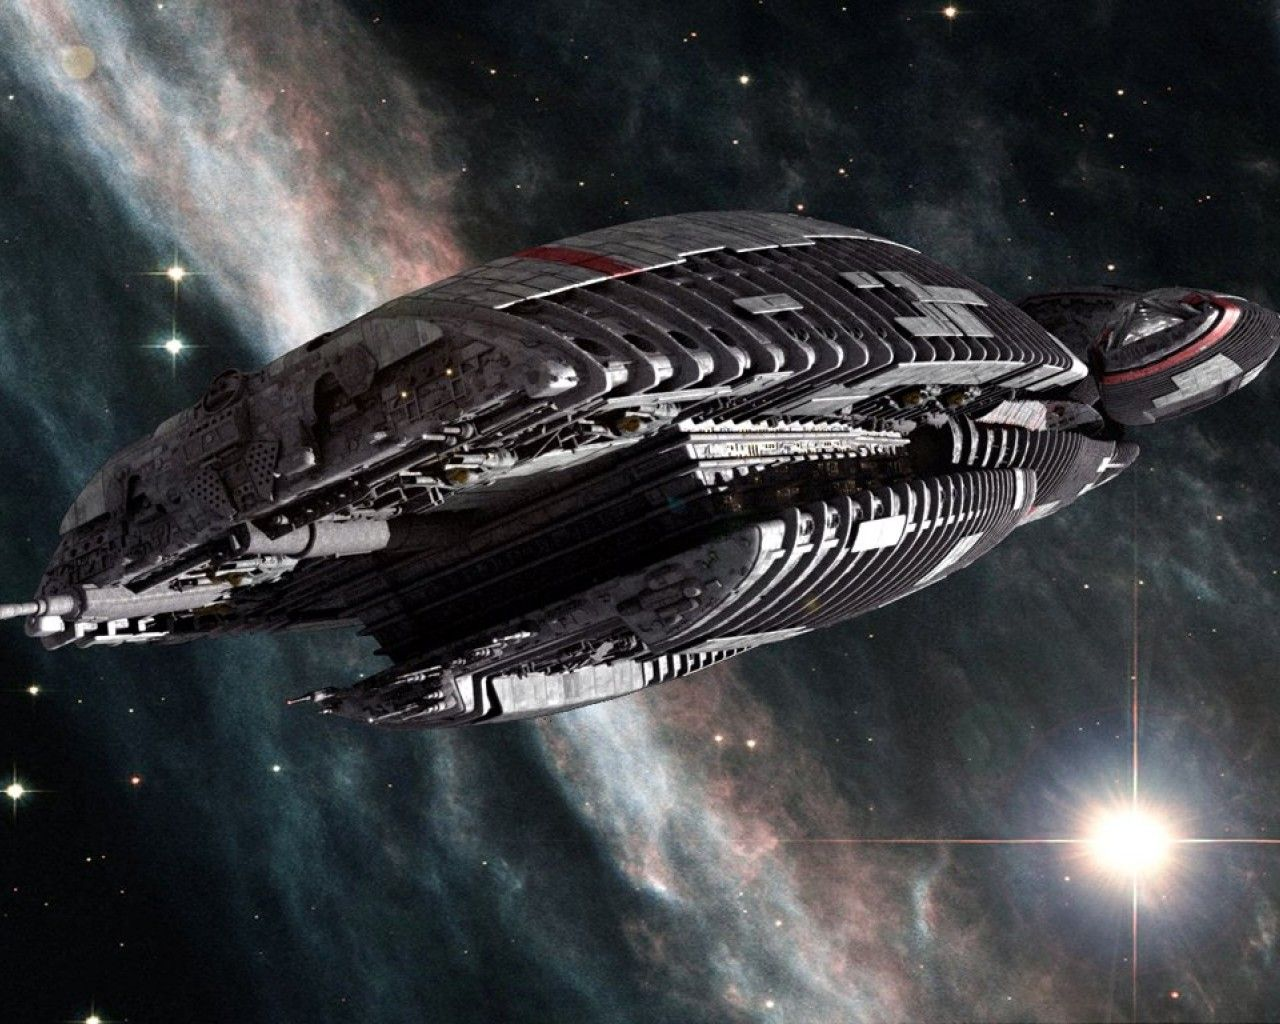 Battlestar Galactica Baltar Other Resolution Wallpapers Spaceships Battlestar Gala Battlestar Galactica Ship Battlestar Galactica Battlestar Galactica Movie